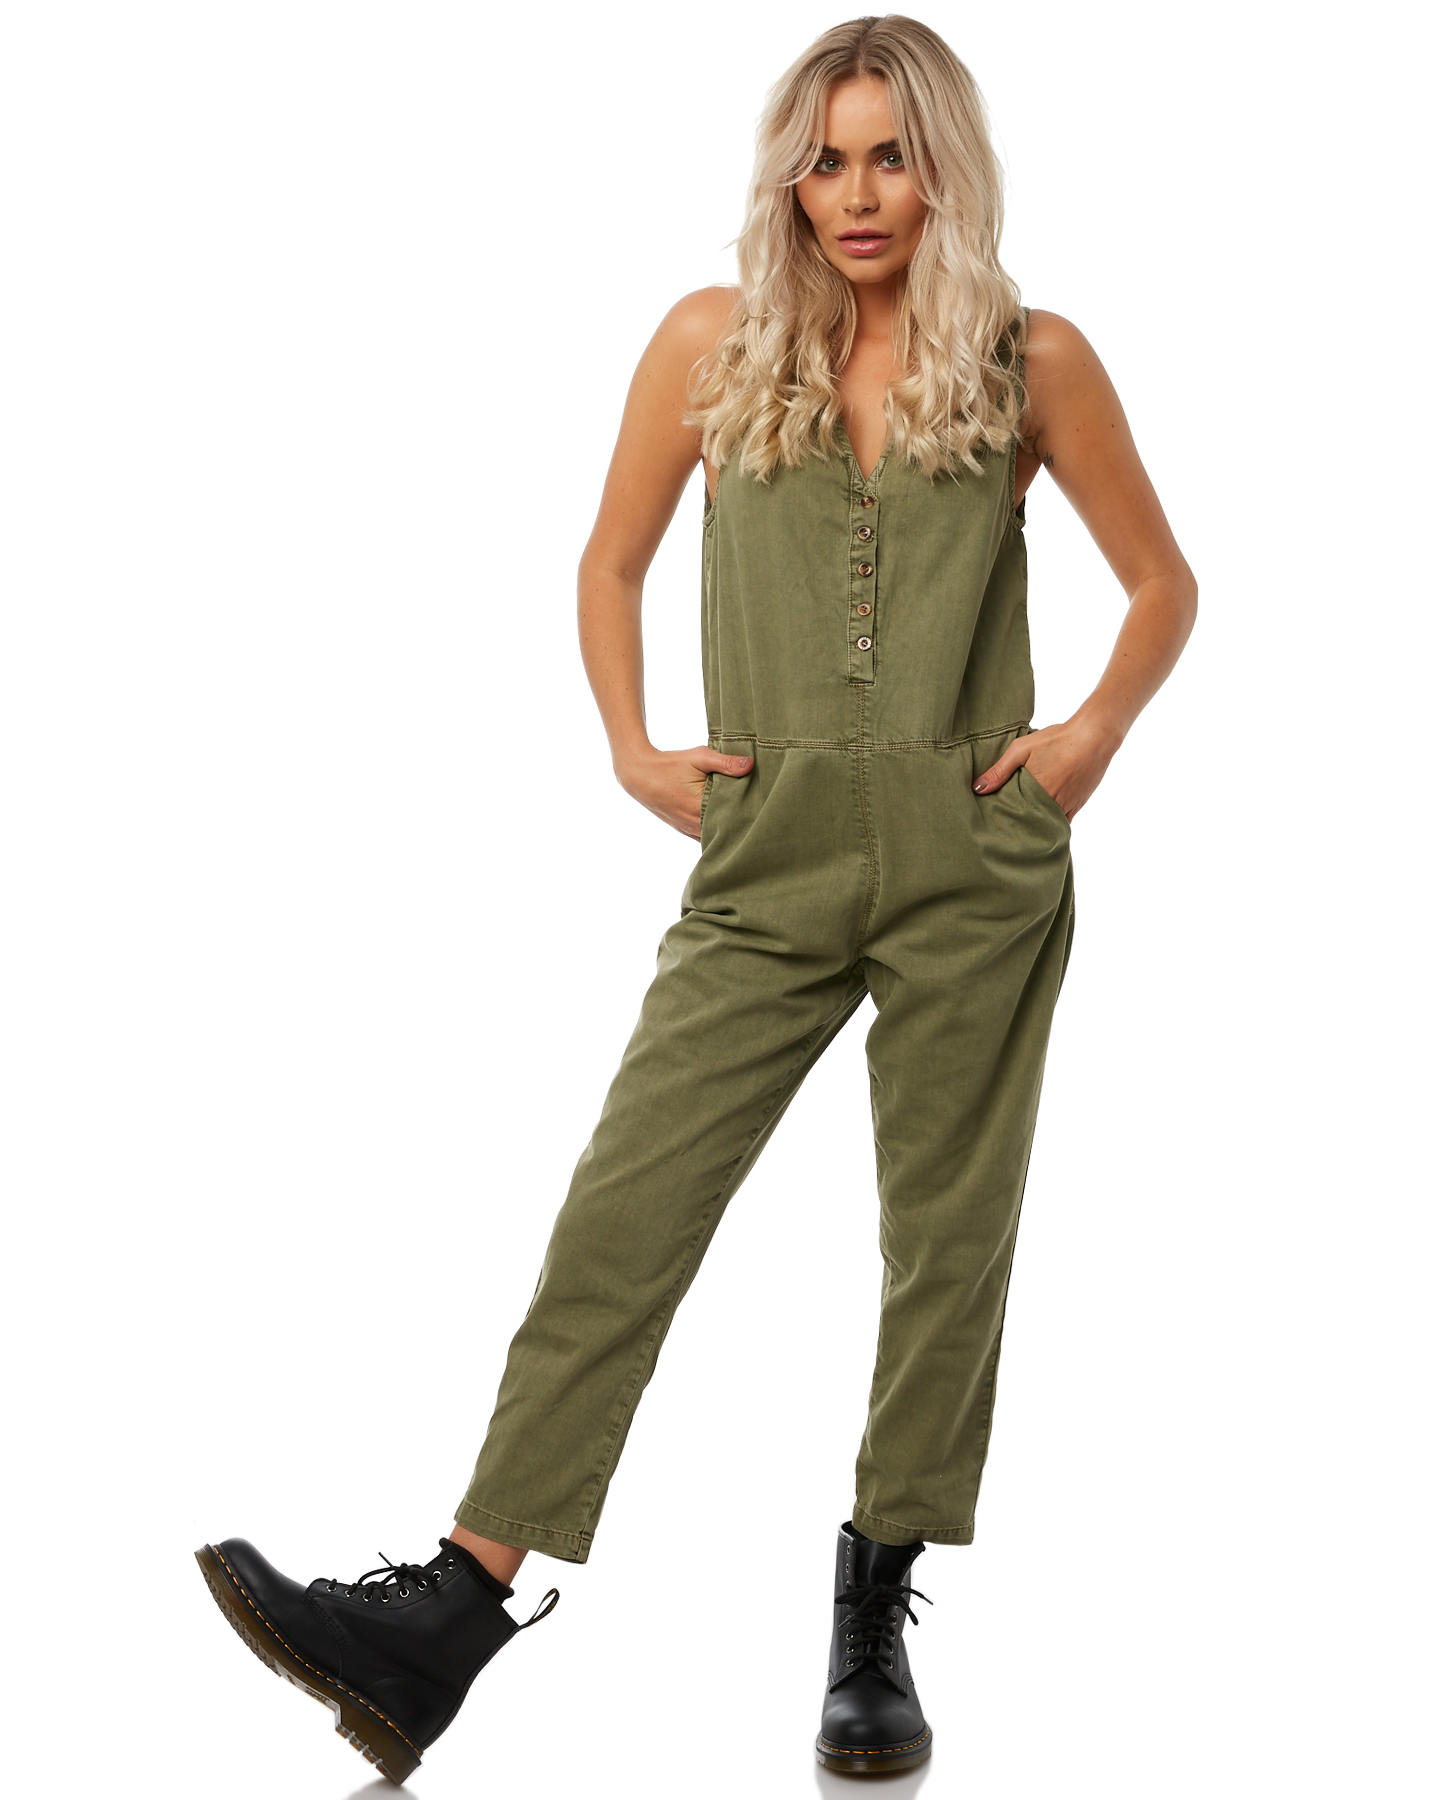 411491bc37e Thrills Shadows Jumpsuit Army Green Playsuit Size 10